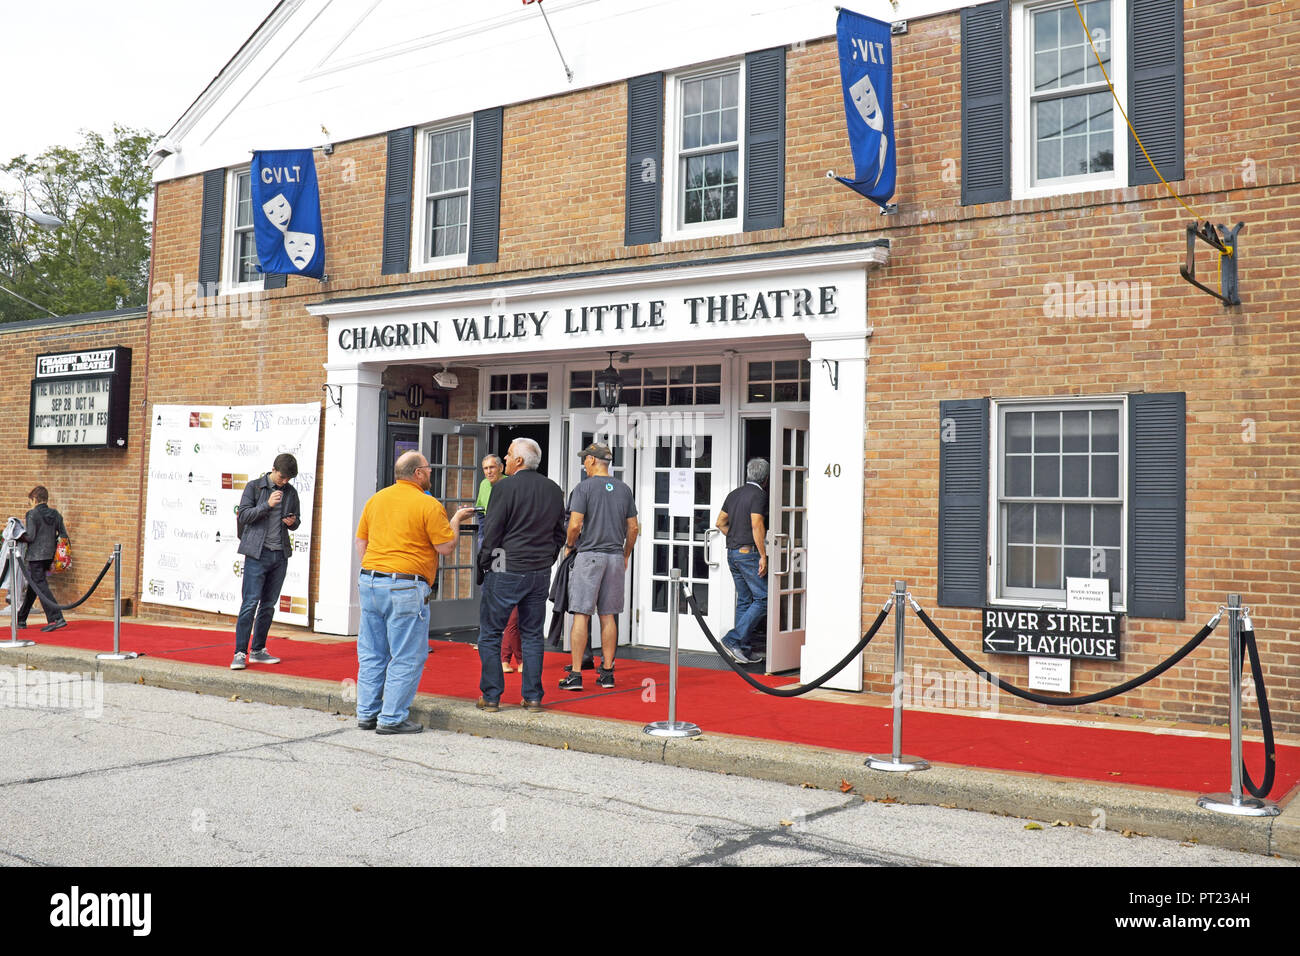 Chagrin Falls, Ohio, USA, 5th Oct, 2018.  People gather outside one of the main venues of the 9th Annual Chagrin Documentary Filmfest in Chagrin Falls, Ohio.  The documentary film festival which runs from October 3-7, 2018 across several venues in this quaint northeast Ohio town highlights national and international documentaries.  The inspiration for the festival comes from the late David Ponce, an aspiring documentarian who succumbed to leukemia at the age of 20.  Credit: Mark Kanning/Alamy Live News. - Stock Image